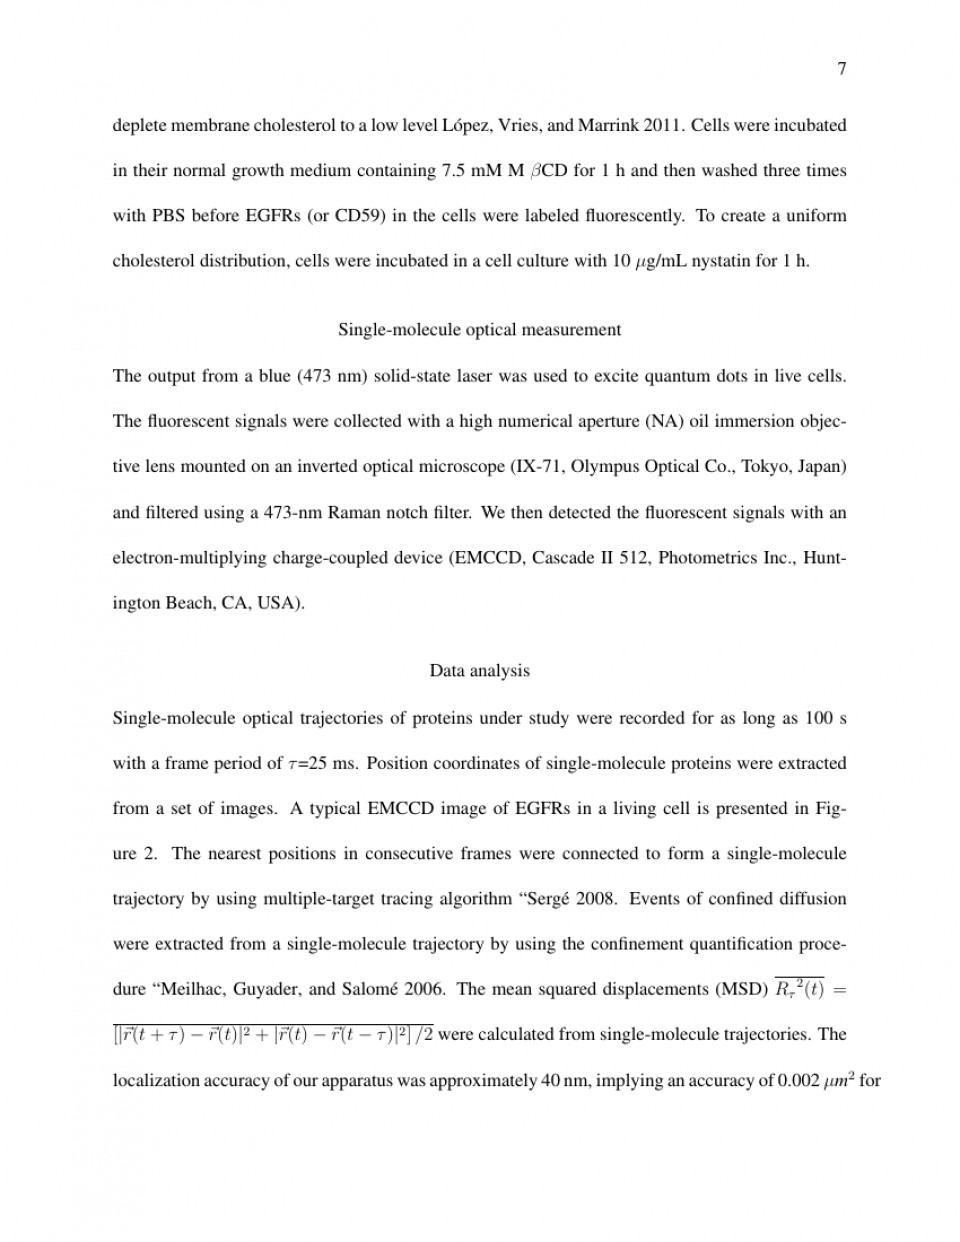 003 Article Format For Researchs Impressive Research Papers Dedication Example Paper Pdf Layout Of A Apa Style Writing 960